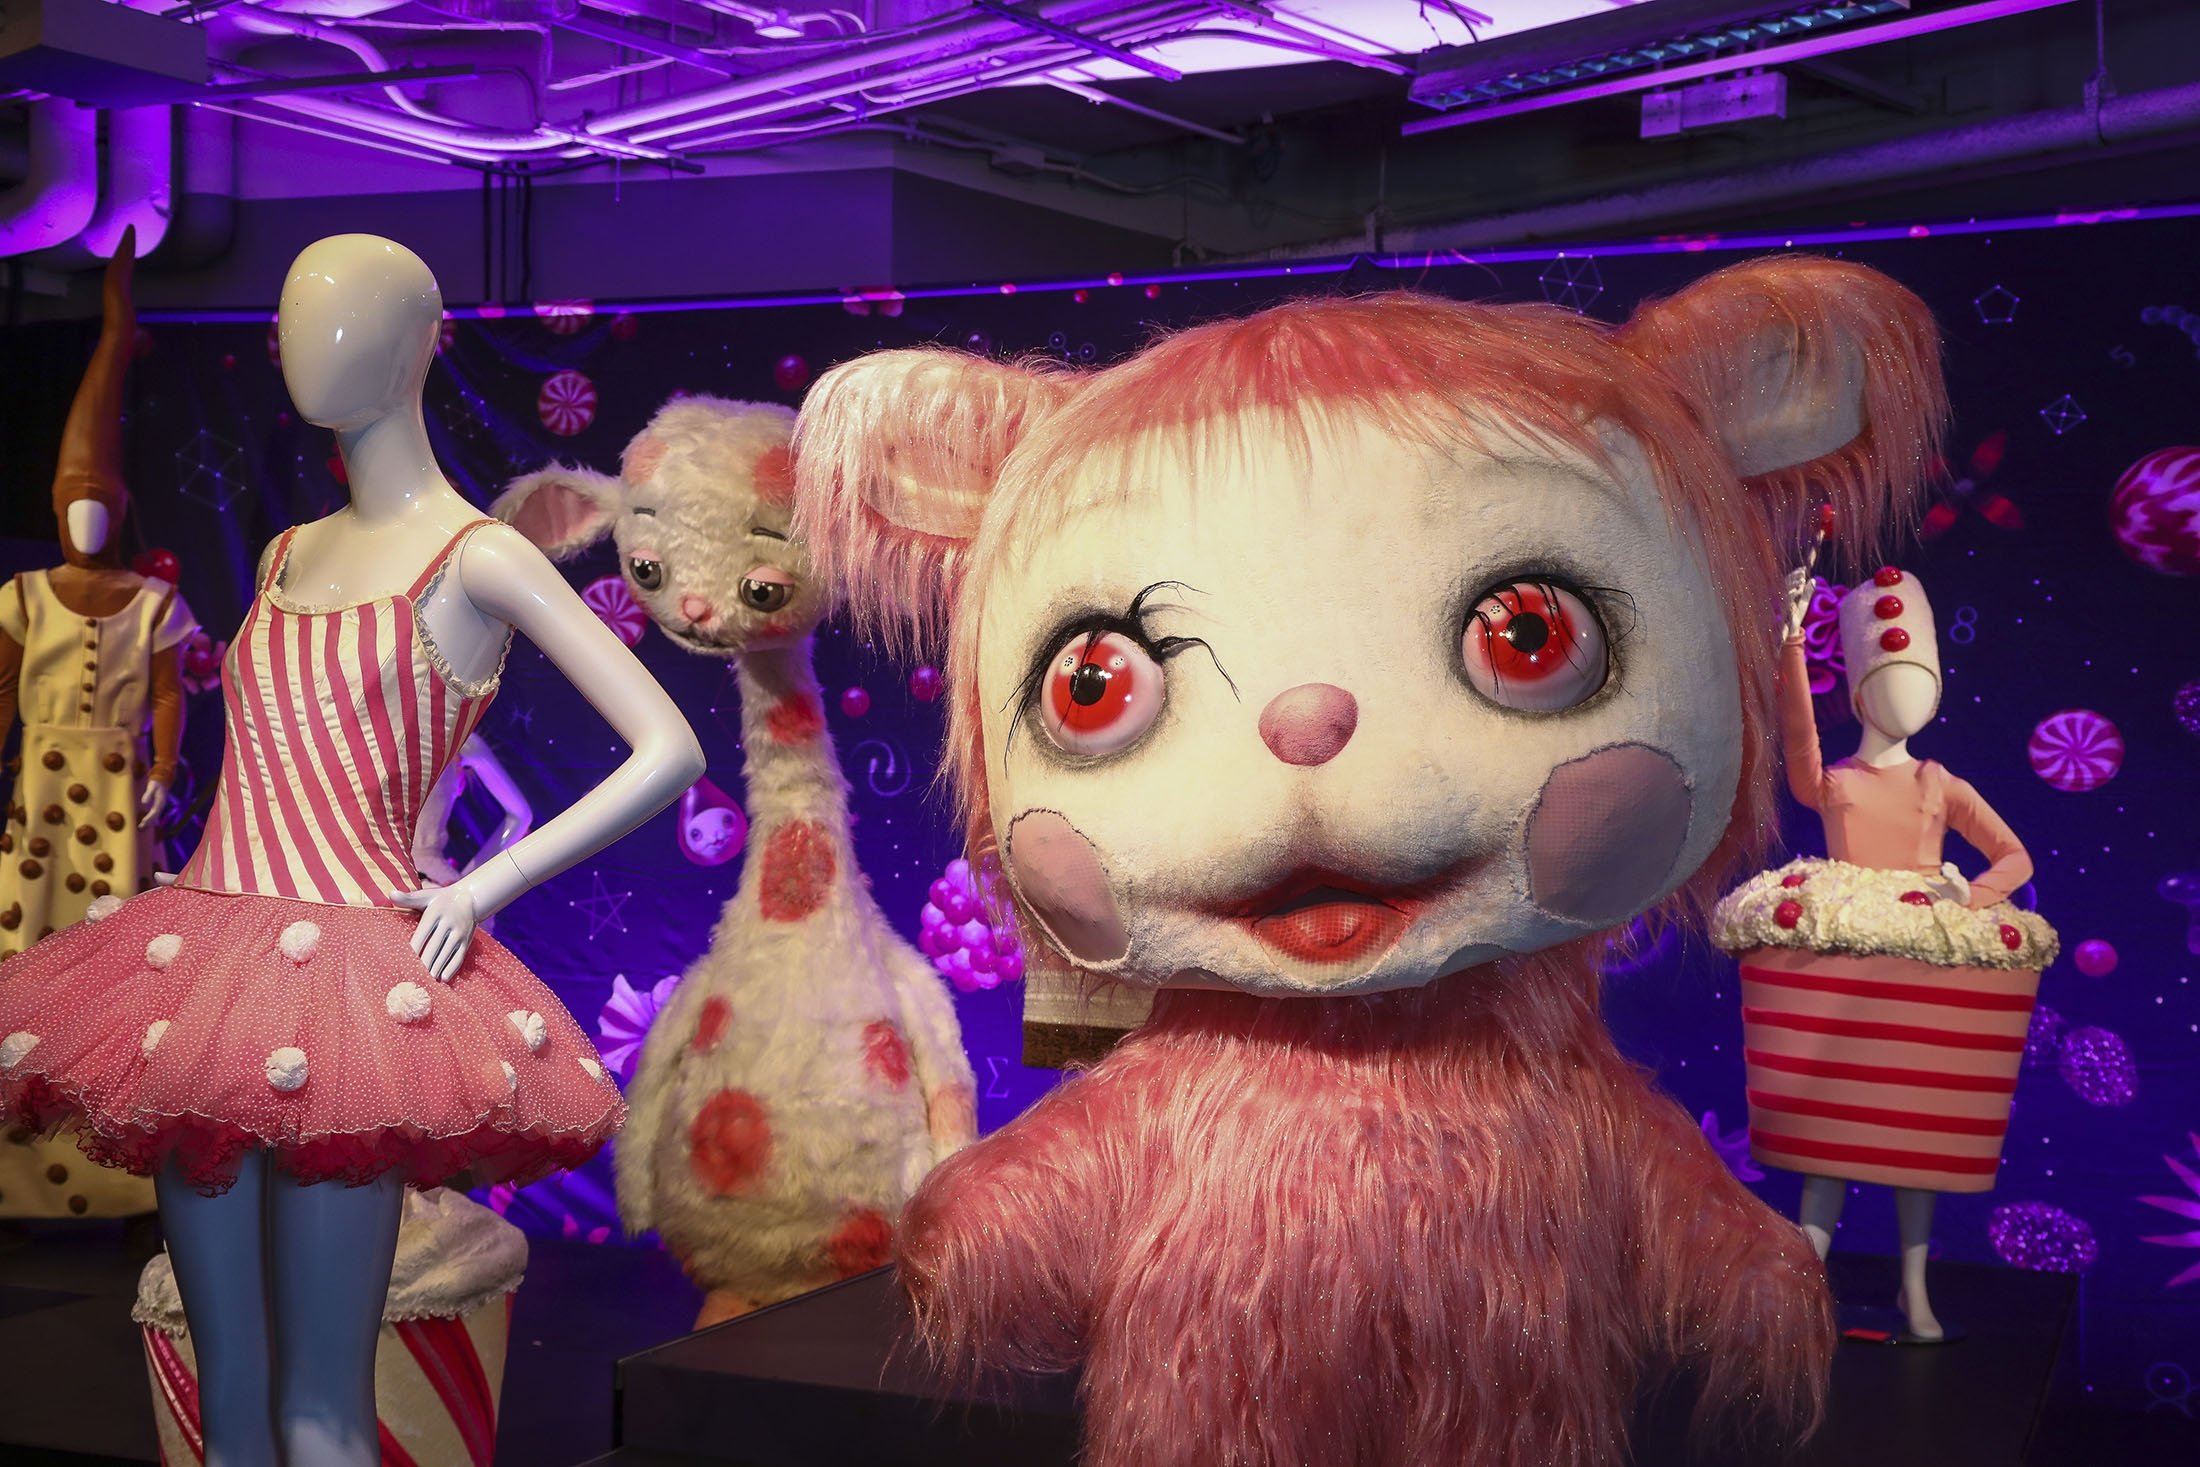 Costumes from the American Ballet Theatre production of 'Whipped Cream' are displayed at the 'Showstoppers! Spectacular Costumes from Stage & Screen' exhibit in Times Square, New York, U.S., Aug. 2, 2021. (AP Photo)